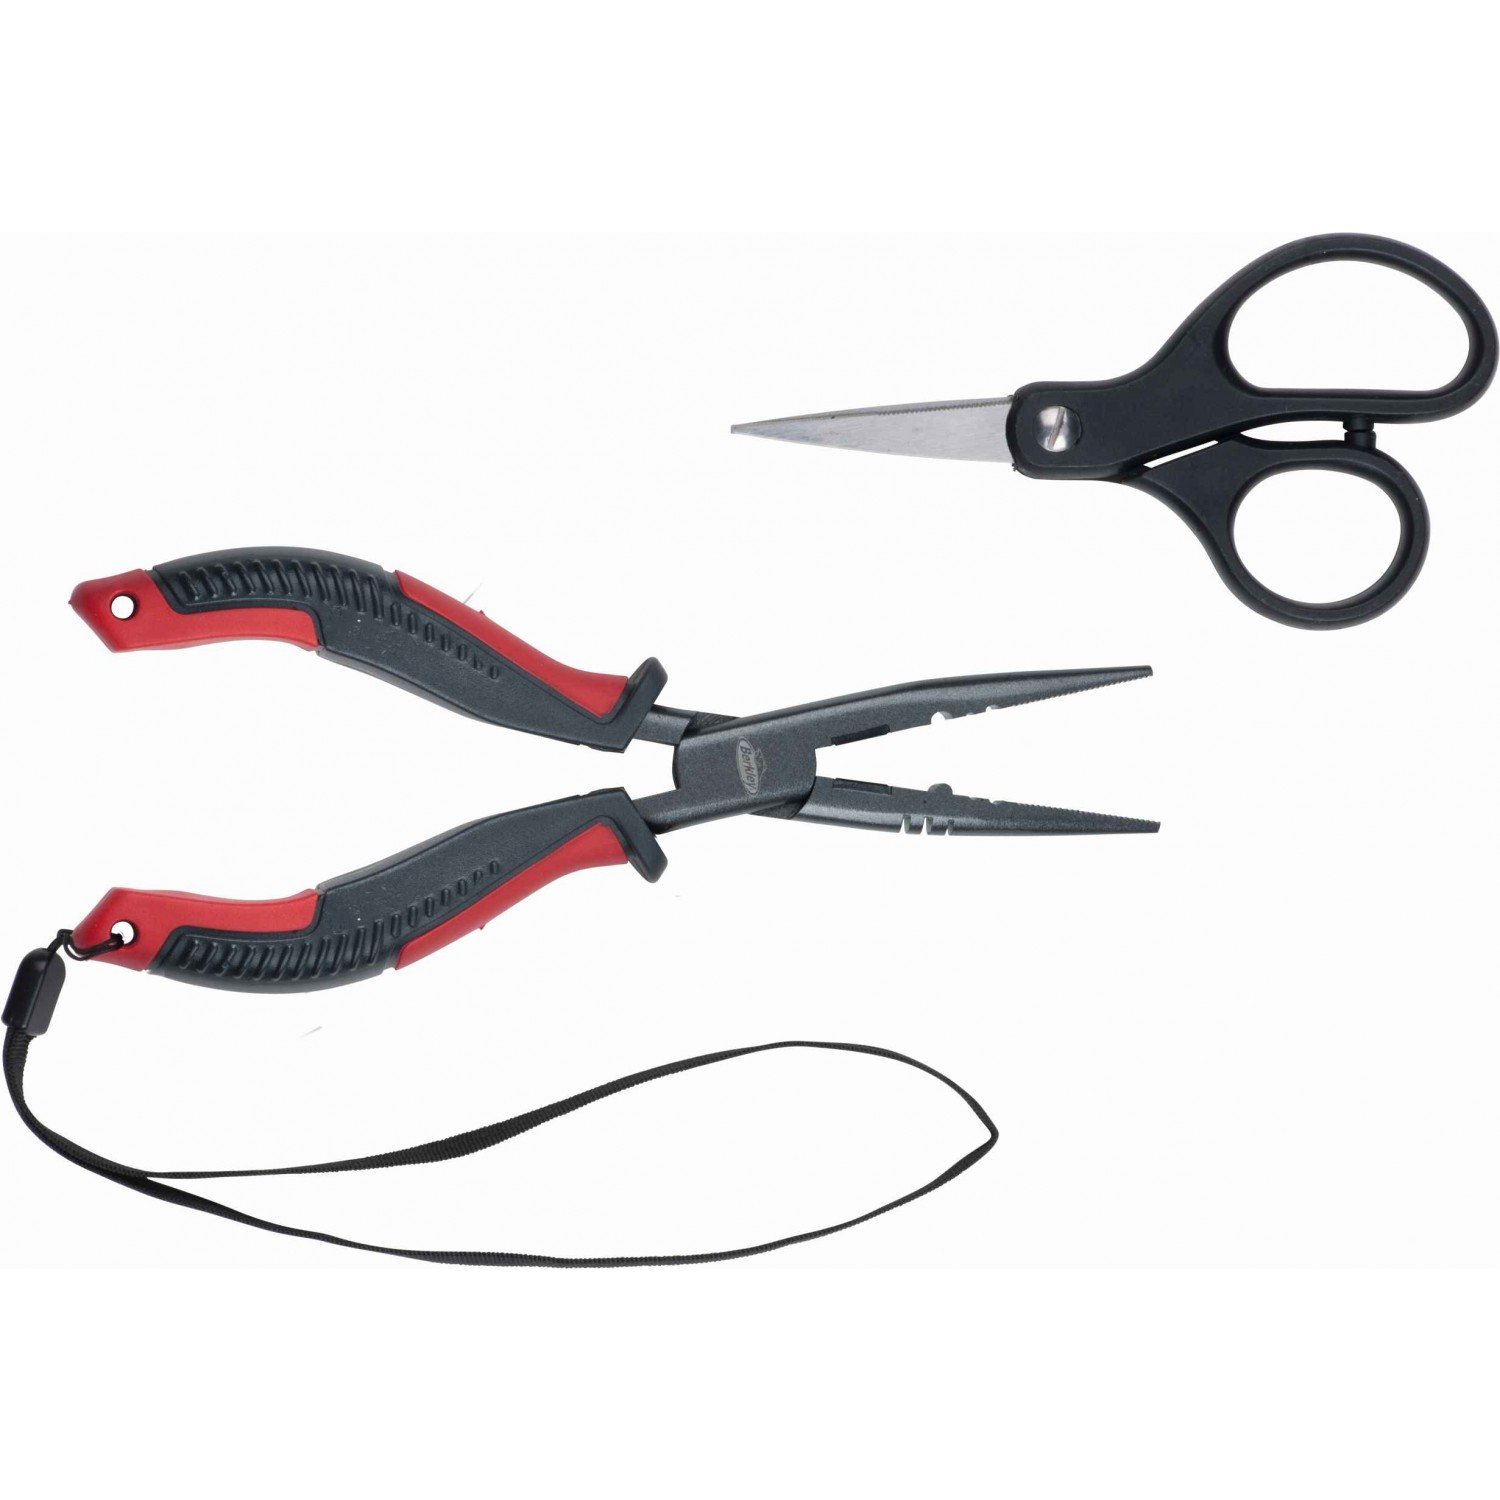 Berkley Fishing Gear Tool Combo Plier & Shears